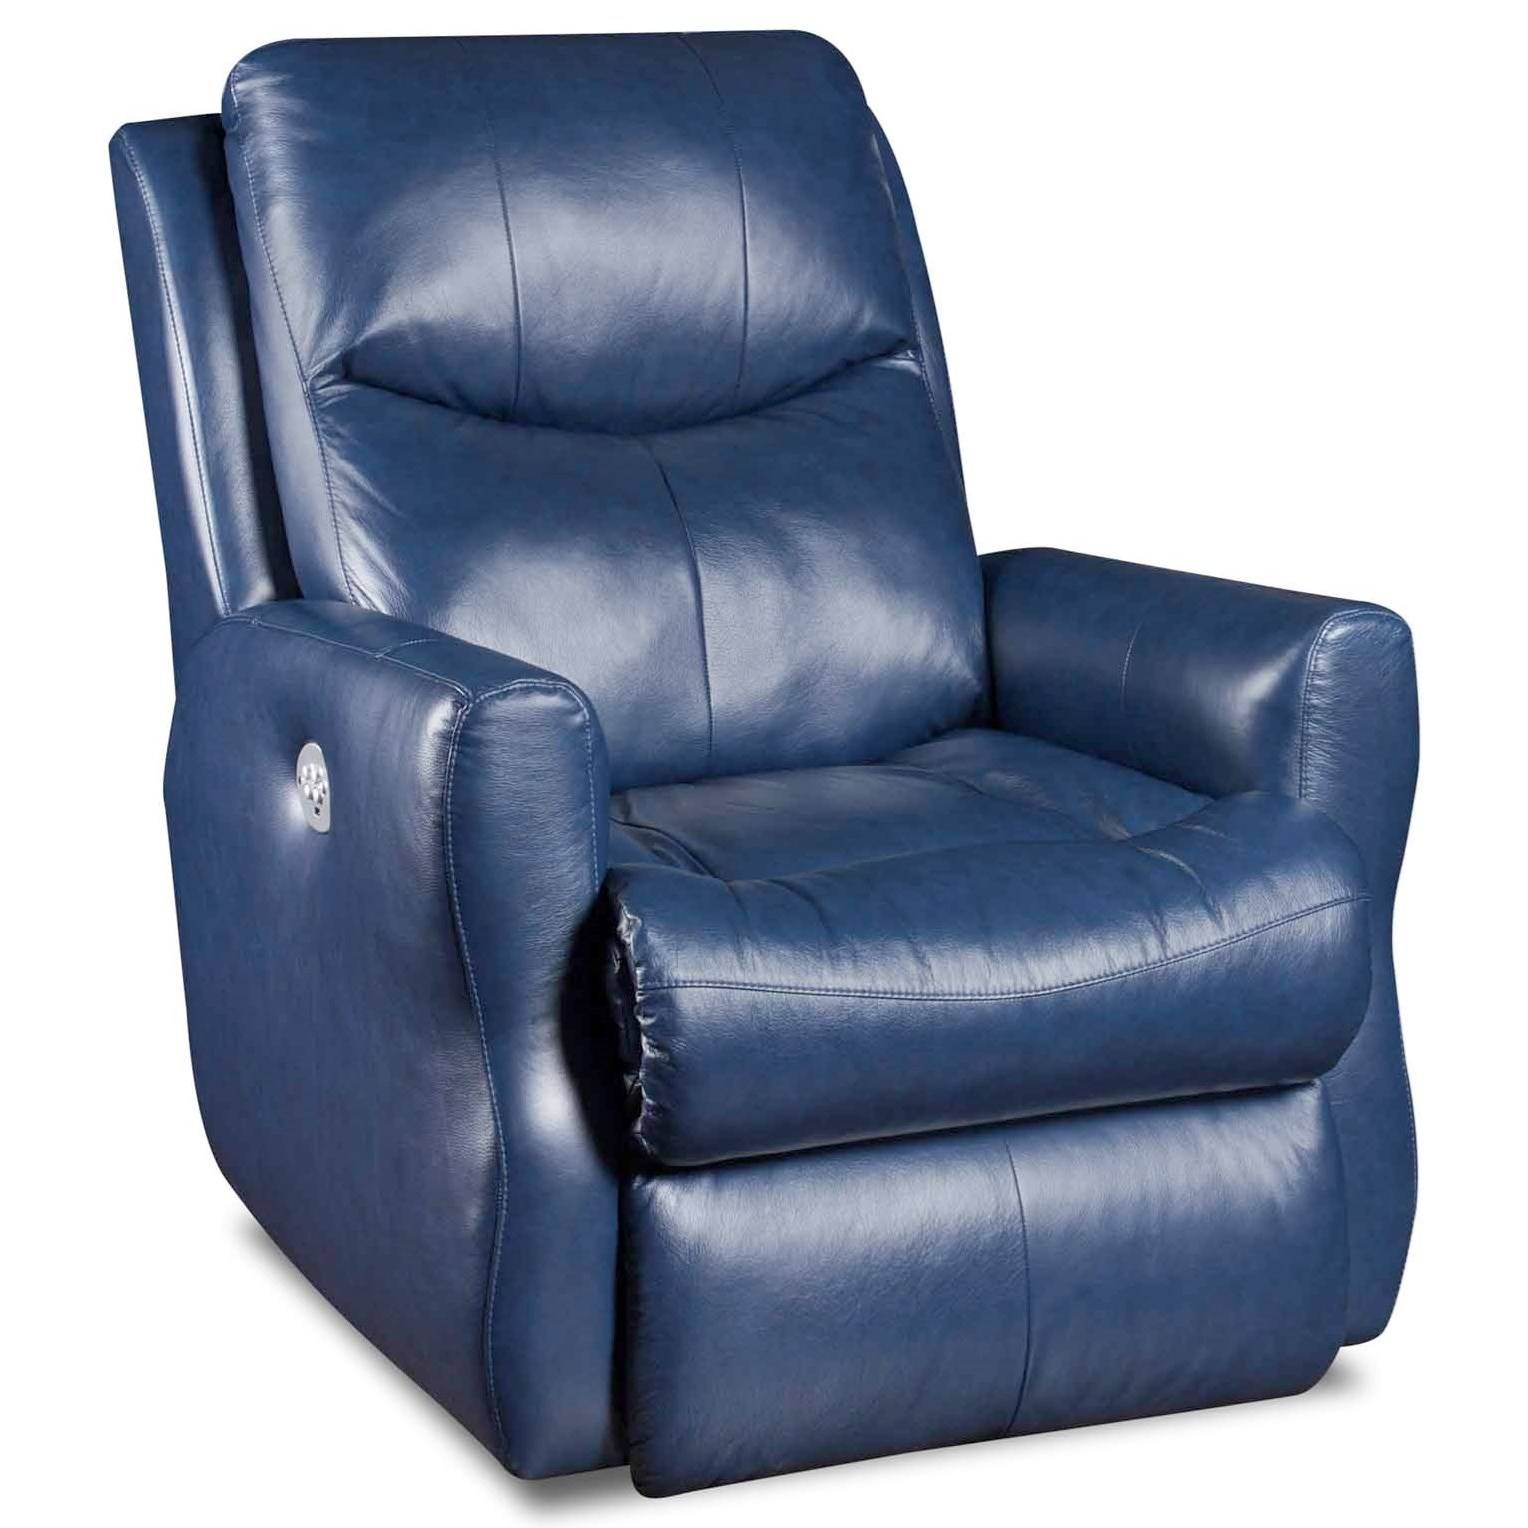 lay flat recliner chairs chair on sale southern motion recliners 97007 fame layflat lift with power headrest